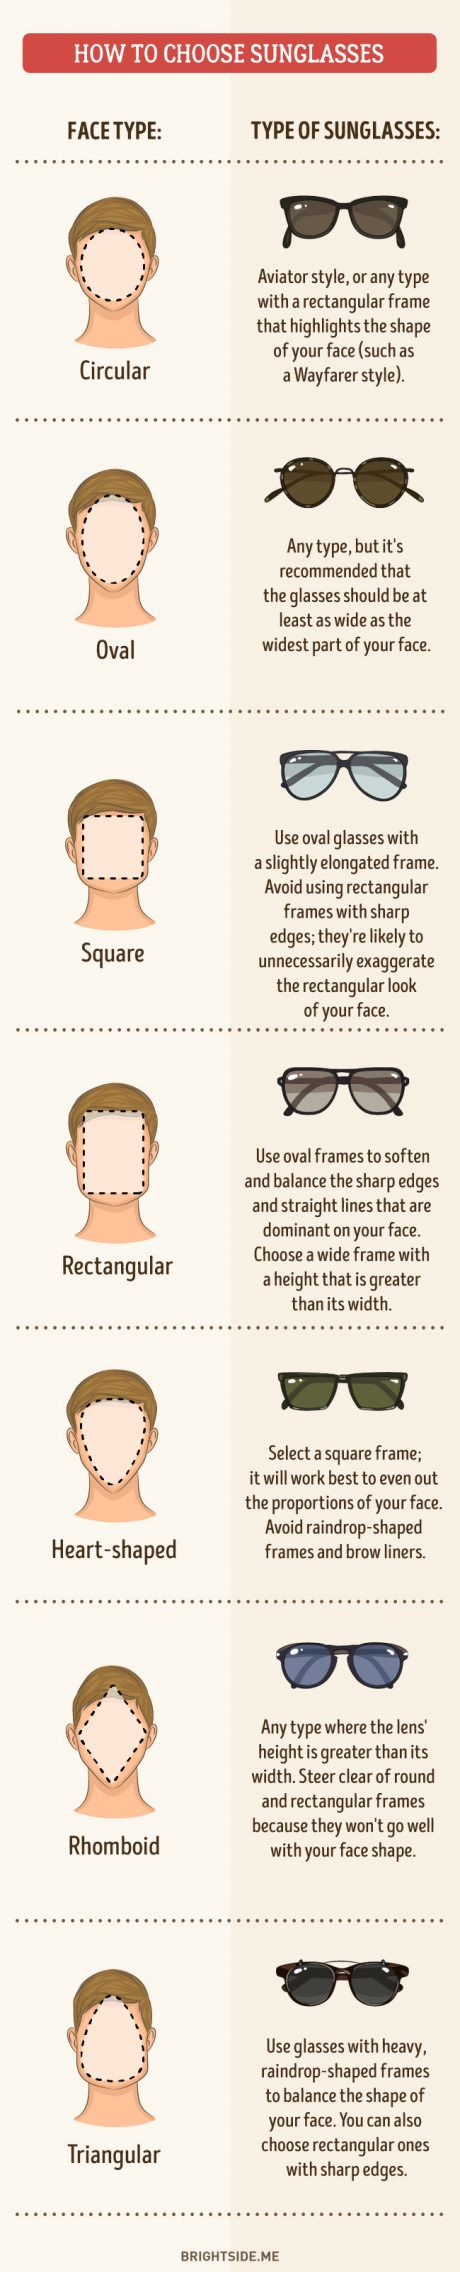 17 Best ideas about Steampunk Sunglasses on Pinterest ...